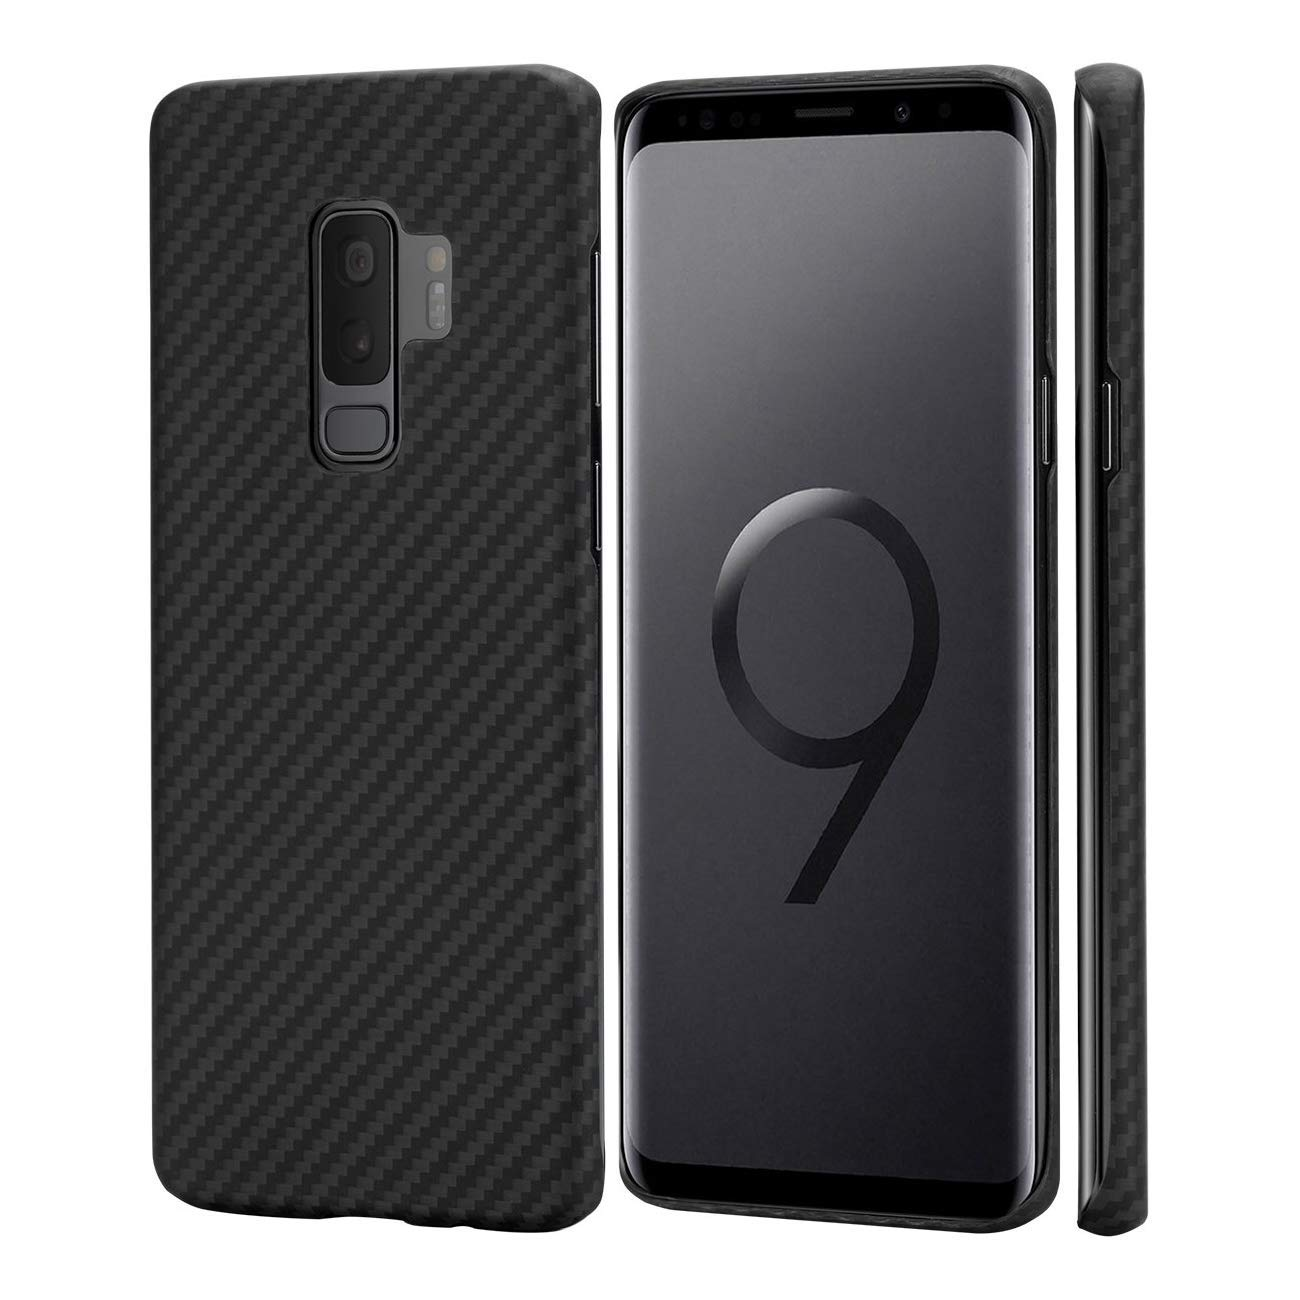 ART ELECTS Carbon Fiber Phone case for S9 Plus, fit Sturdy Durable Case Protective Snap-on Scratch Resistant Back Cover for S9+ - Black